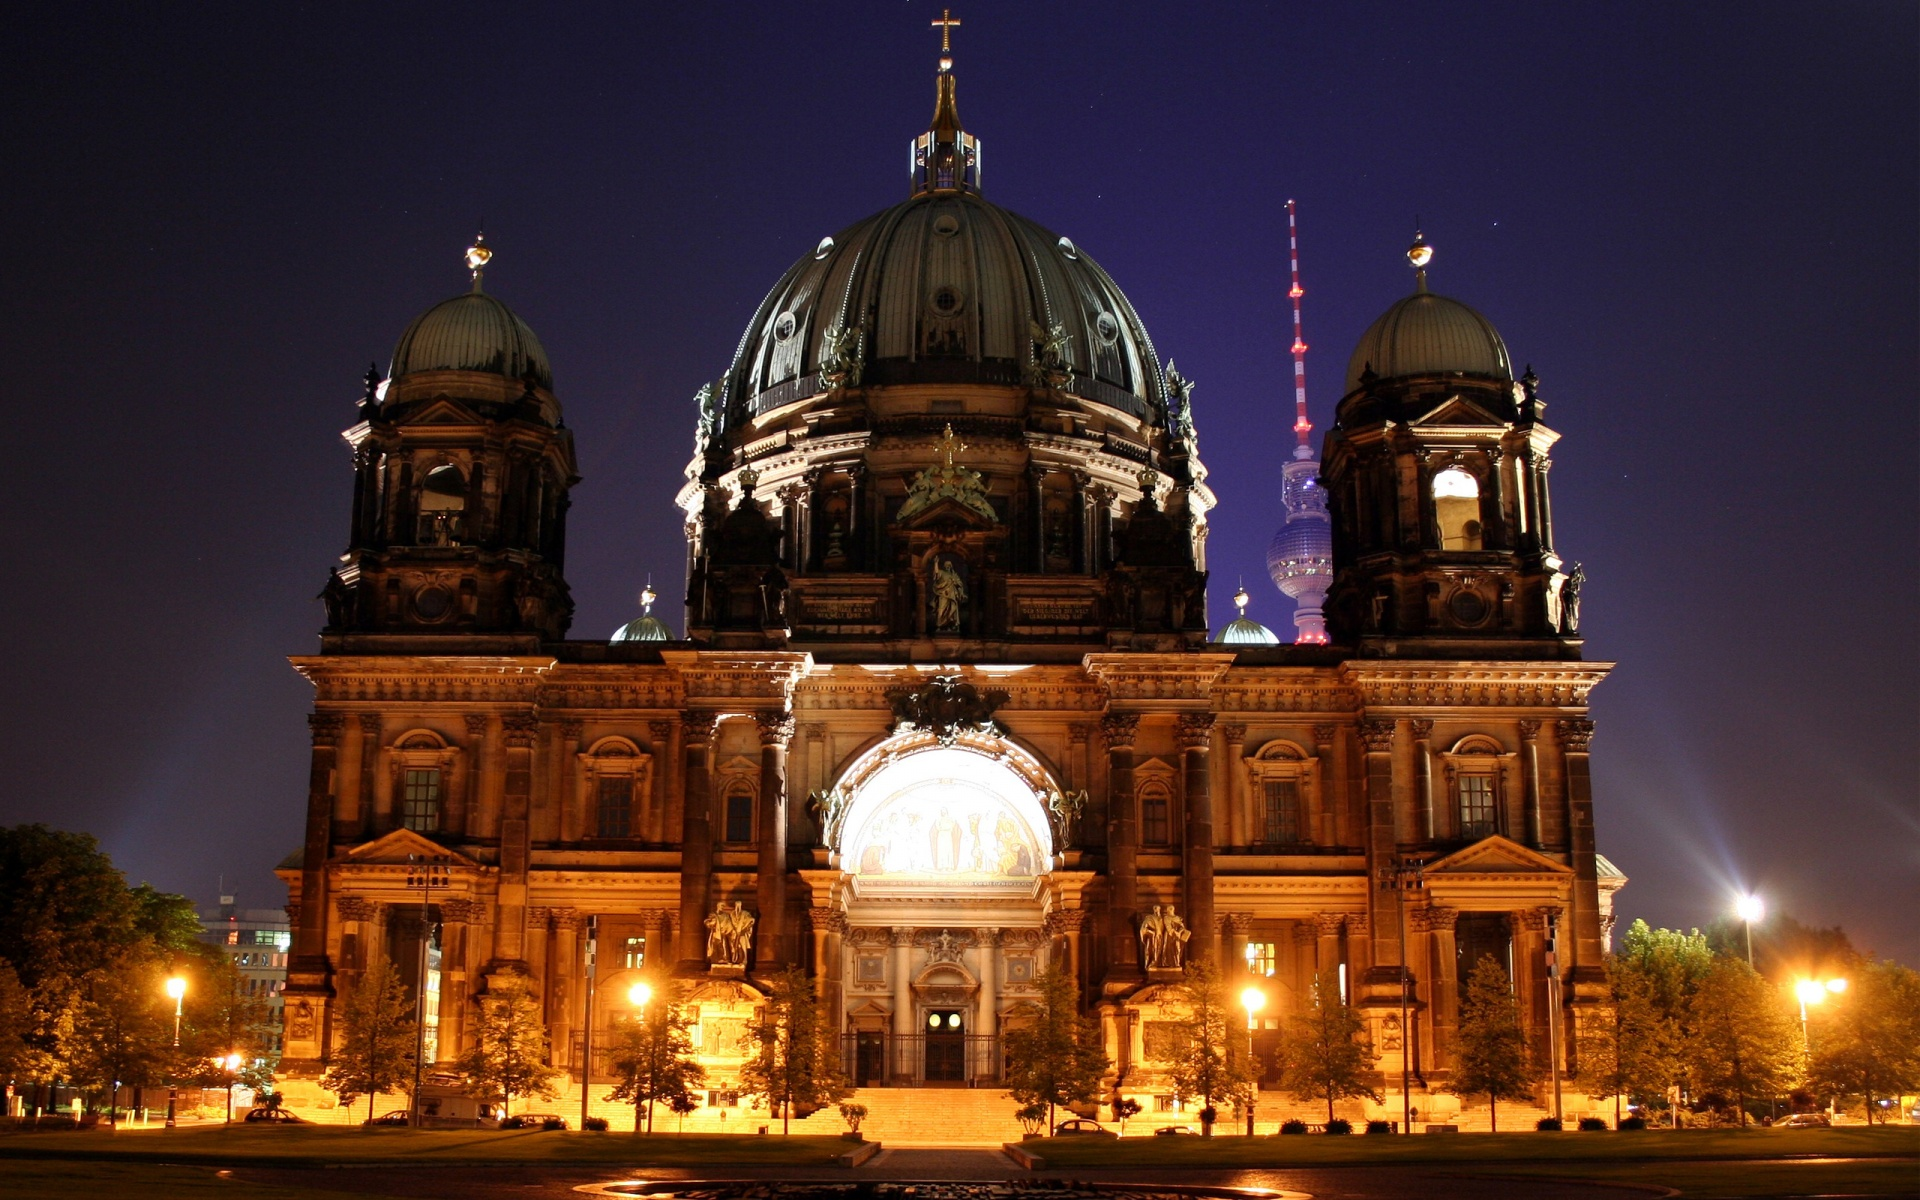 Cute Background Wallpaper For Computer Christmas Hd Berlin Cathedral Full Hd Desktop Wallpapers 1080p